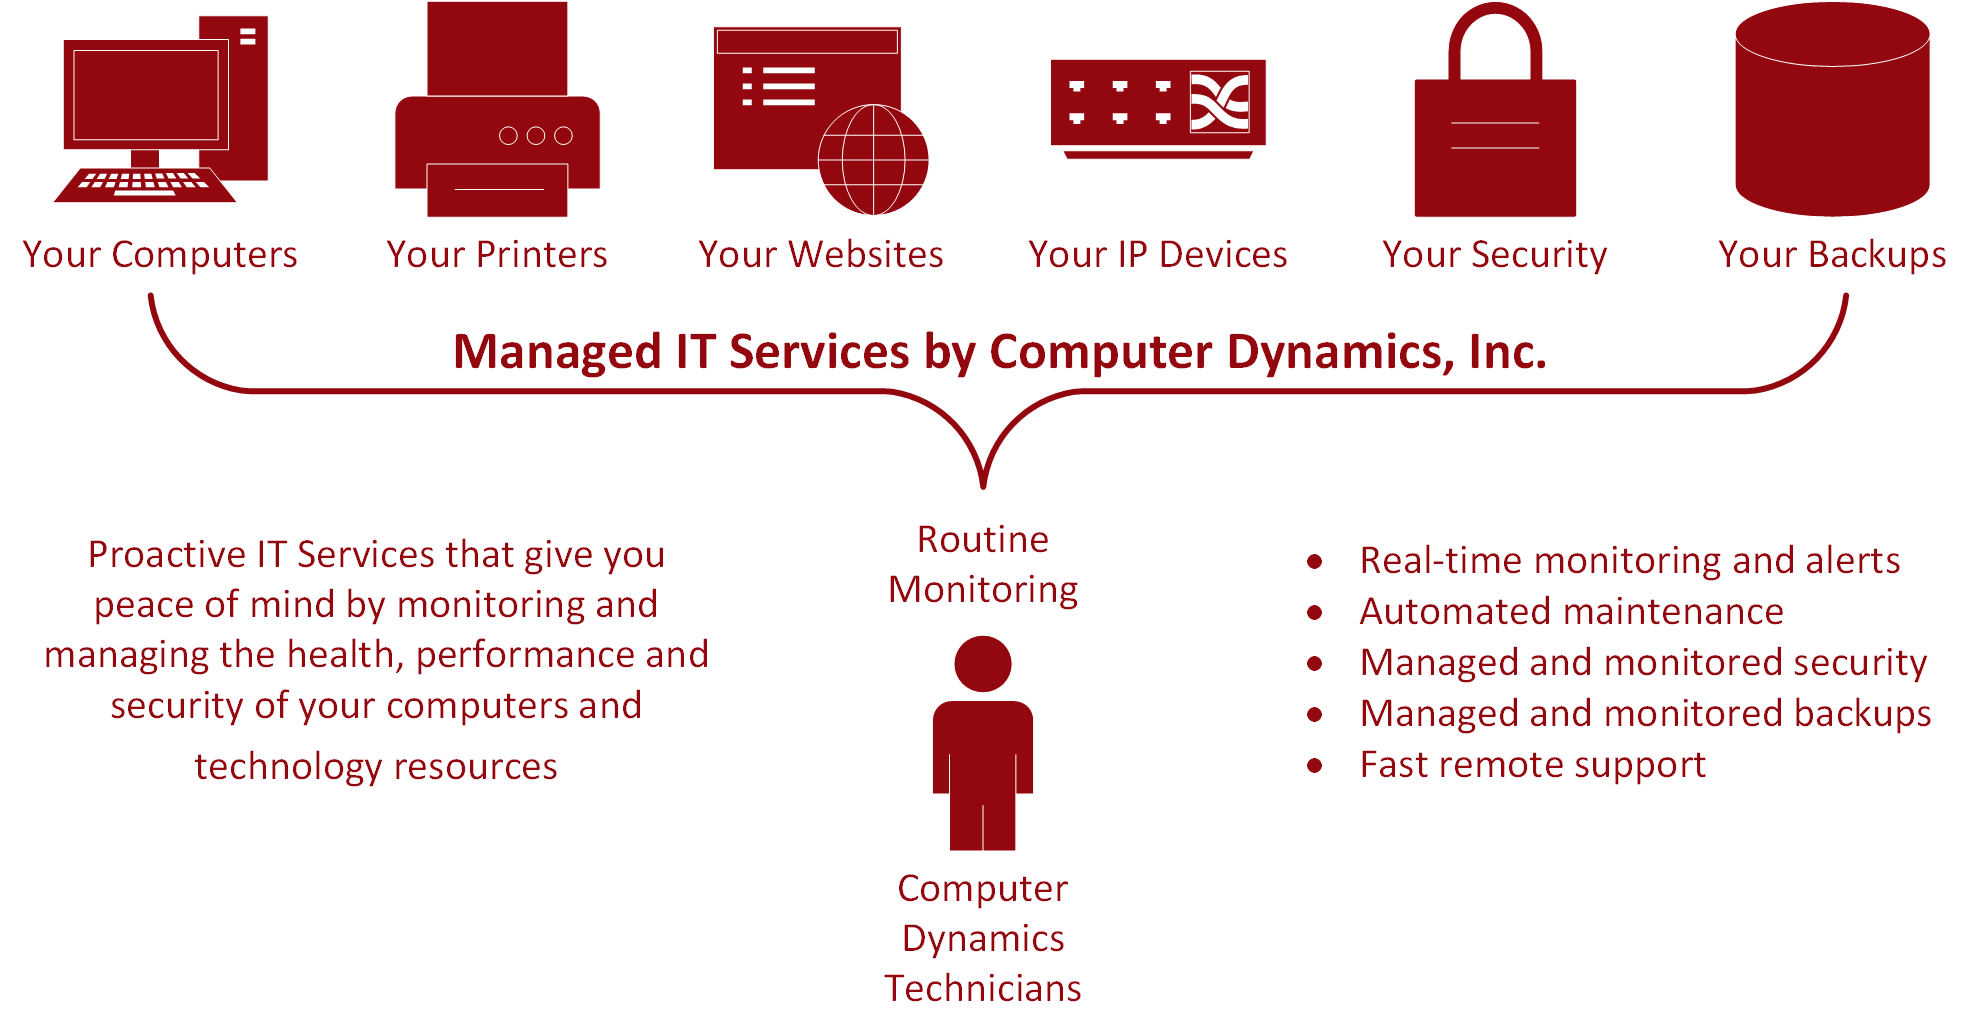 Managed IT Services by Computer Dynamics, Inc.